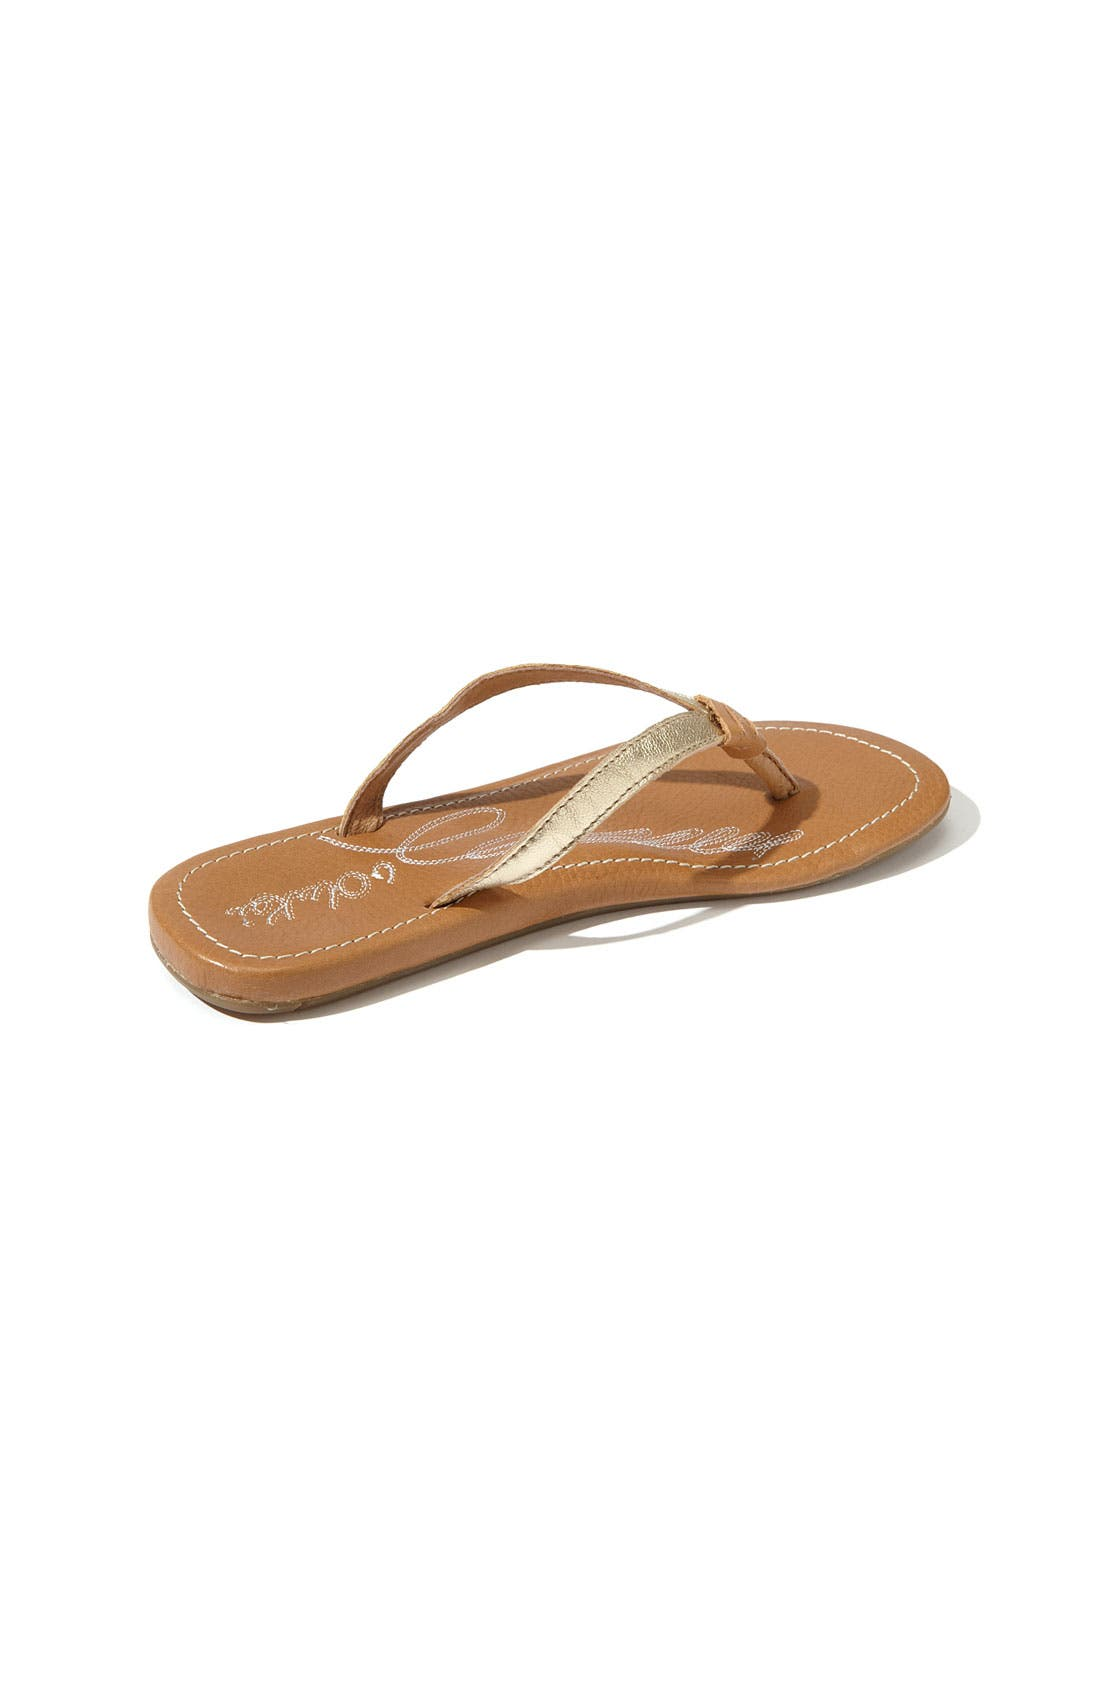 Alternate Image 2  - OluKai 'Ulala' Flip Flop (Toddler, Little Kid & Big Kid)